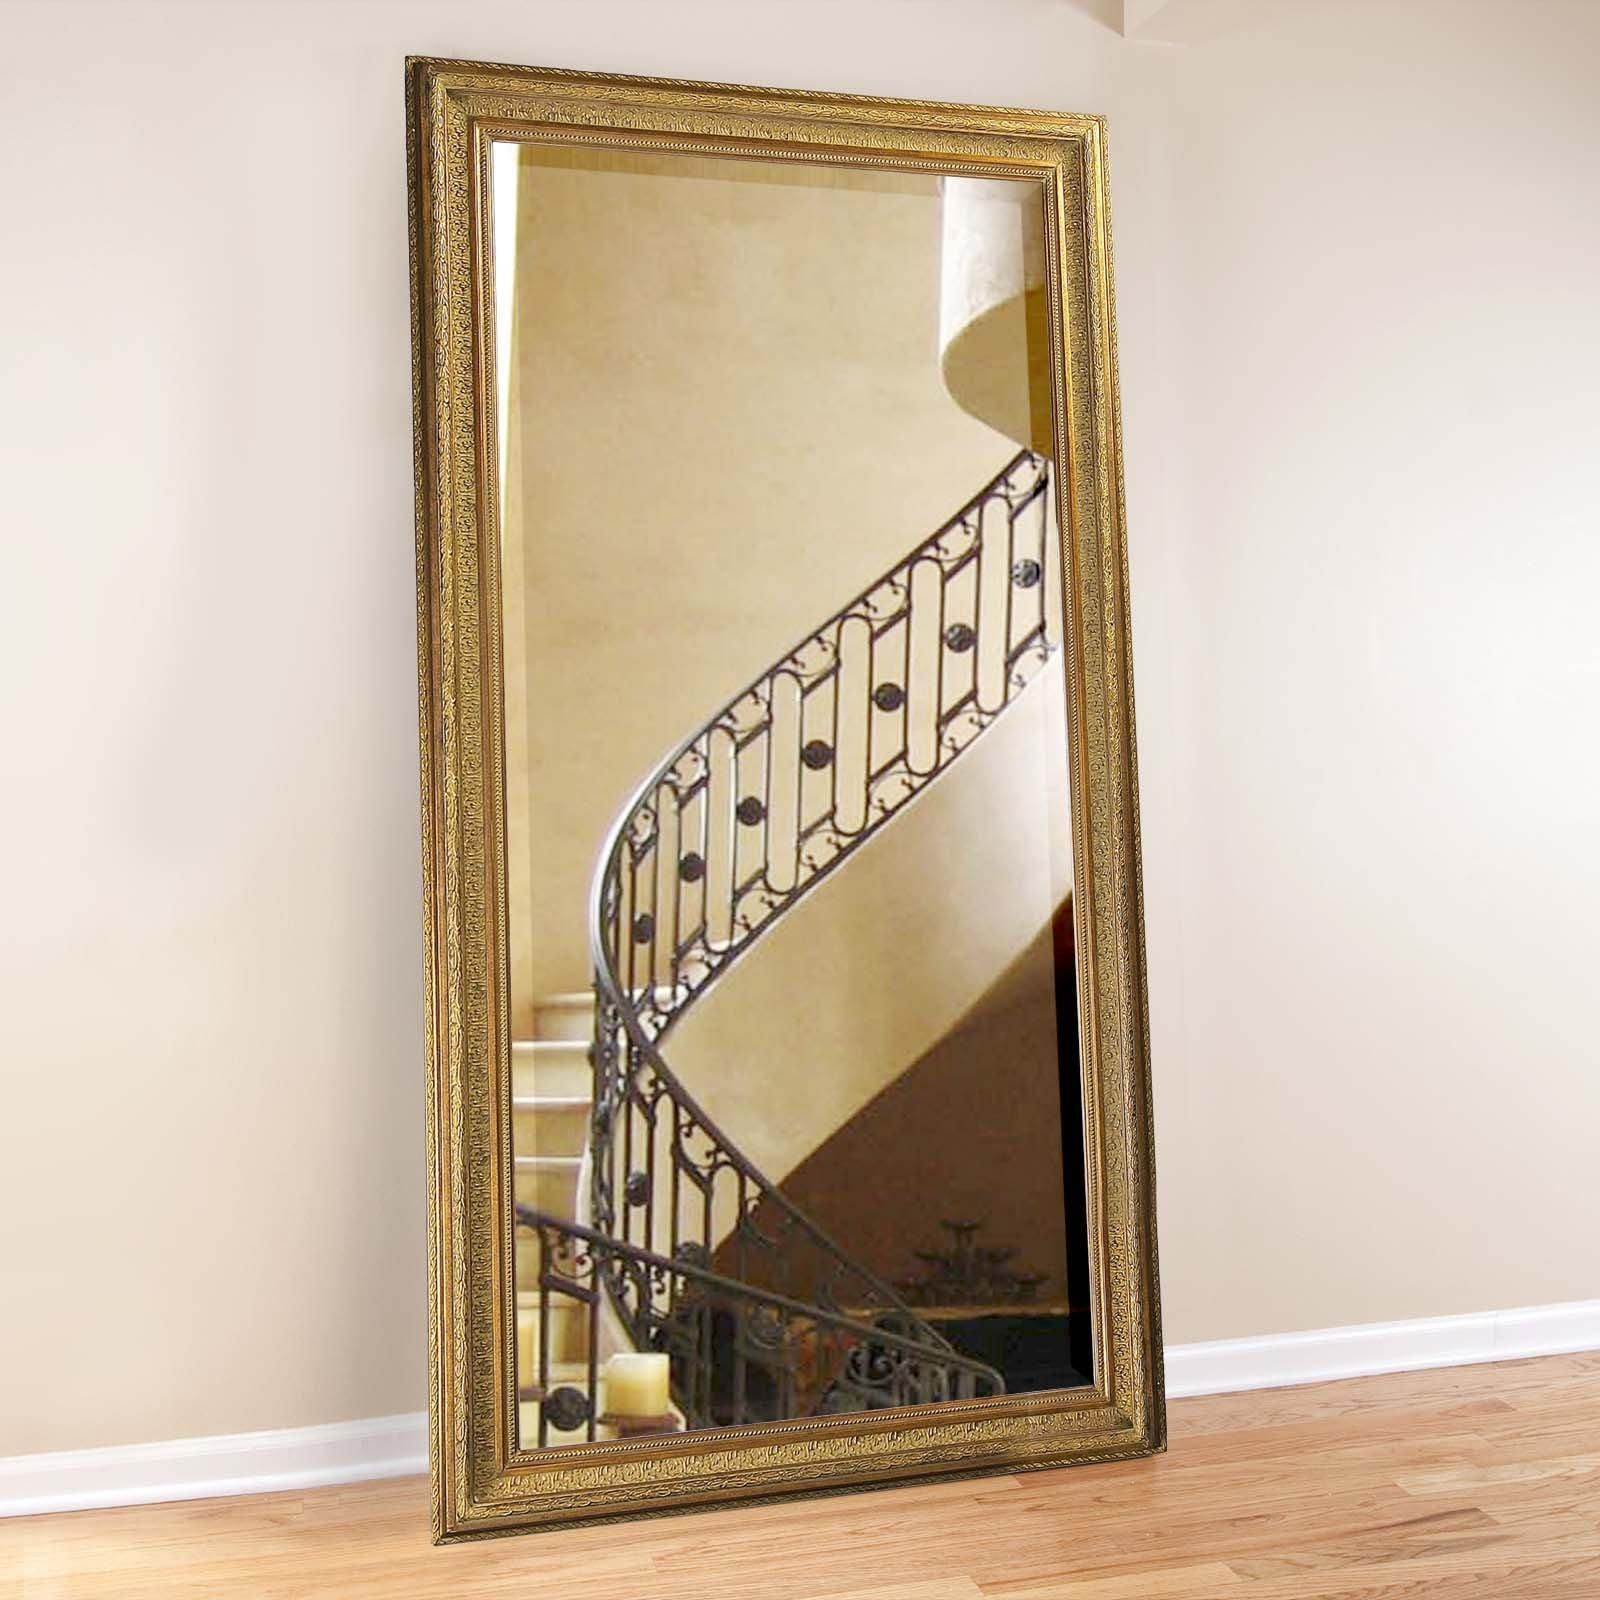 Big Mirrors For Sale 103 Trendy Interior Or Large Gold Very Ornate Inside Gold Mirrors For Sale (Image 8 of 20)